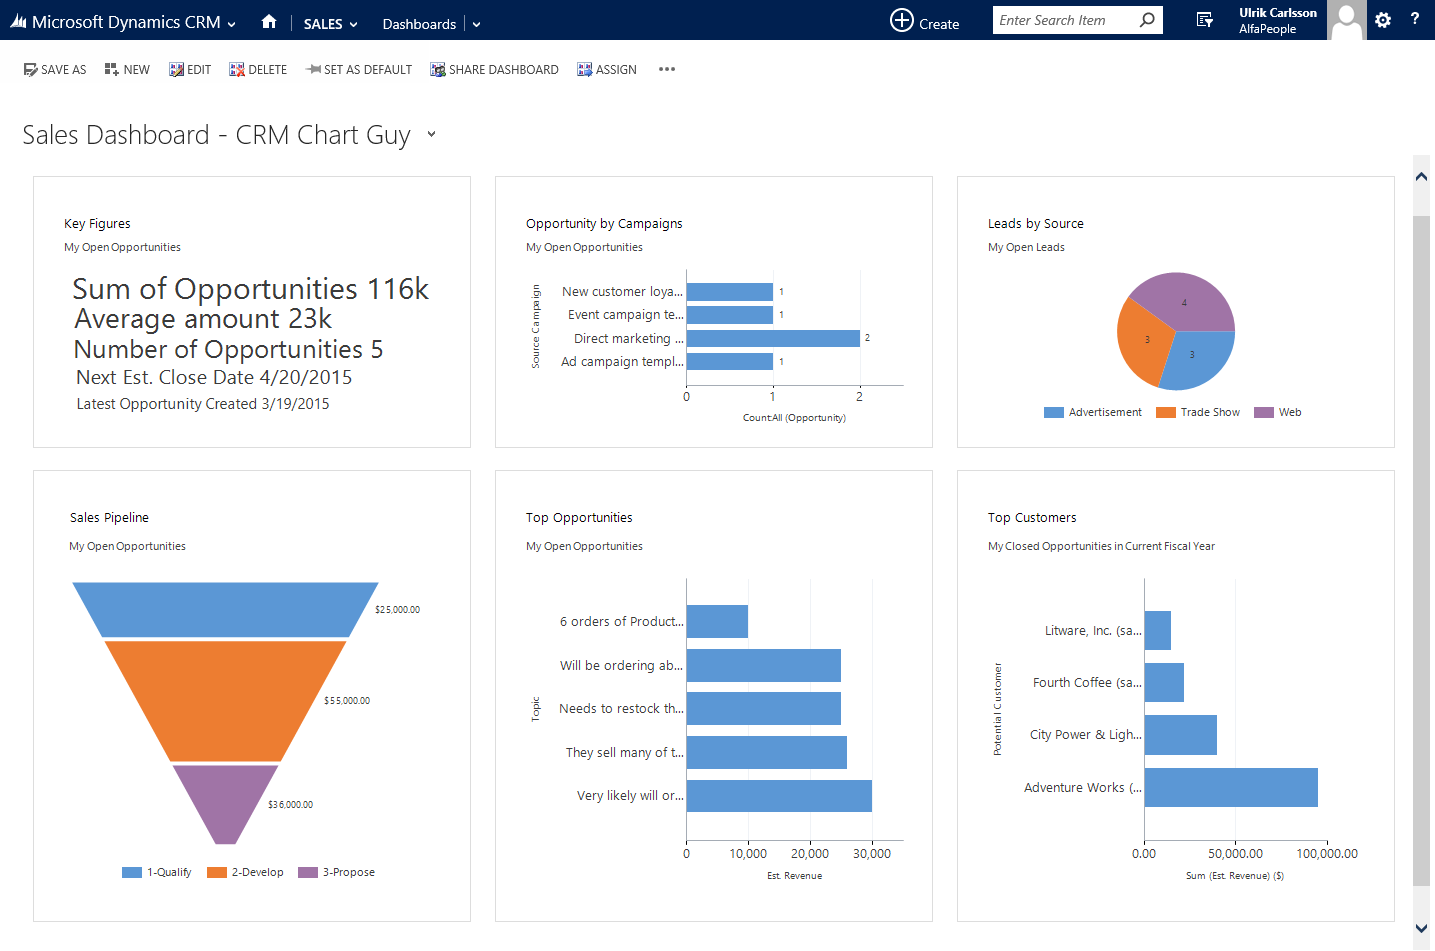 Add Key Figures to Dashboards in MS Dynamics CRM | crm chart guy